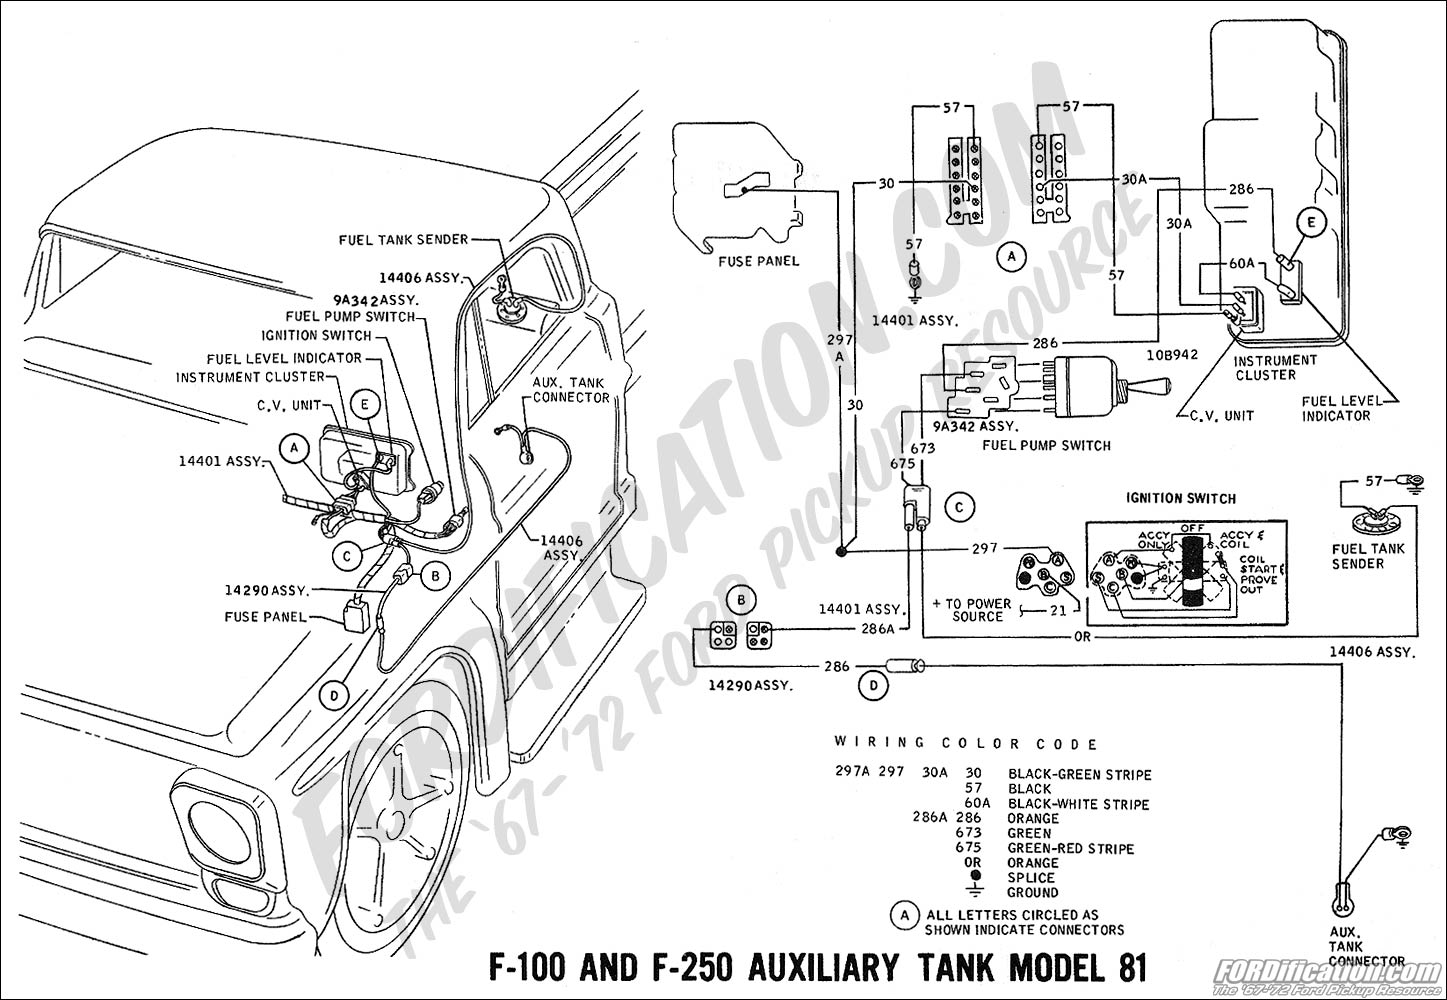 1981 ford f100 wiring diagram another blog about wiring diagram u2022 rh  ok2 infoservice ru ford f100 fuse box 1967 f100 fuse box